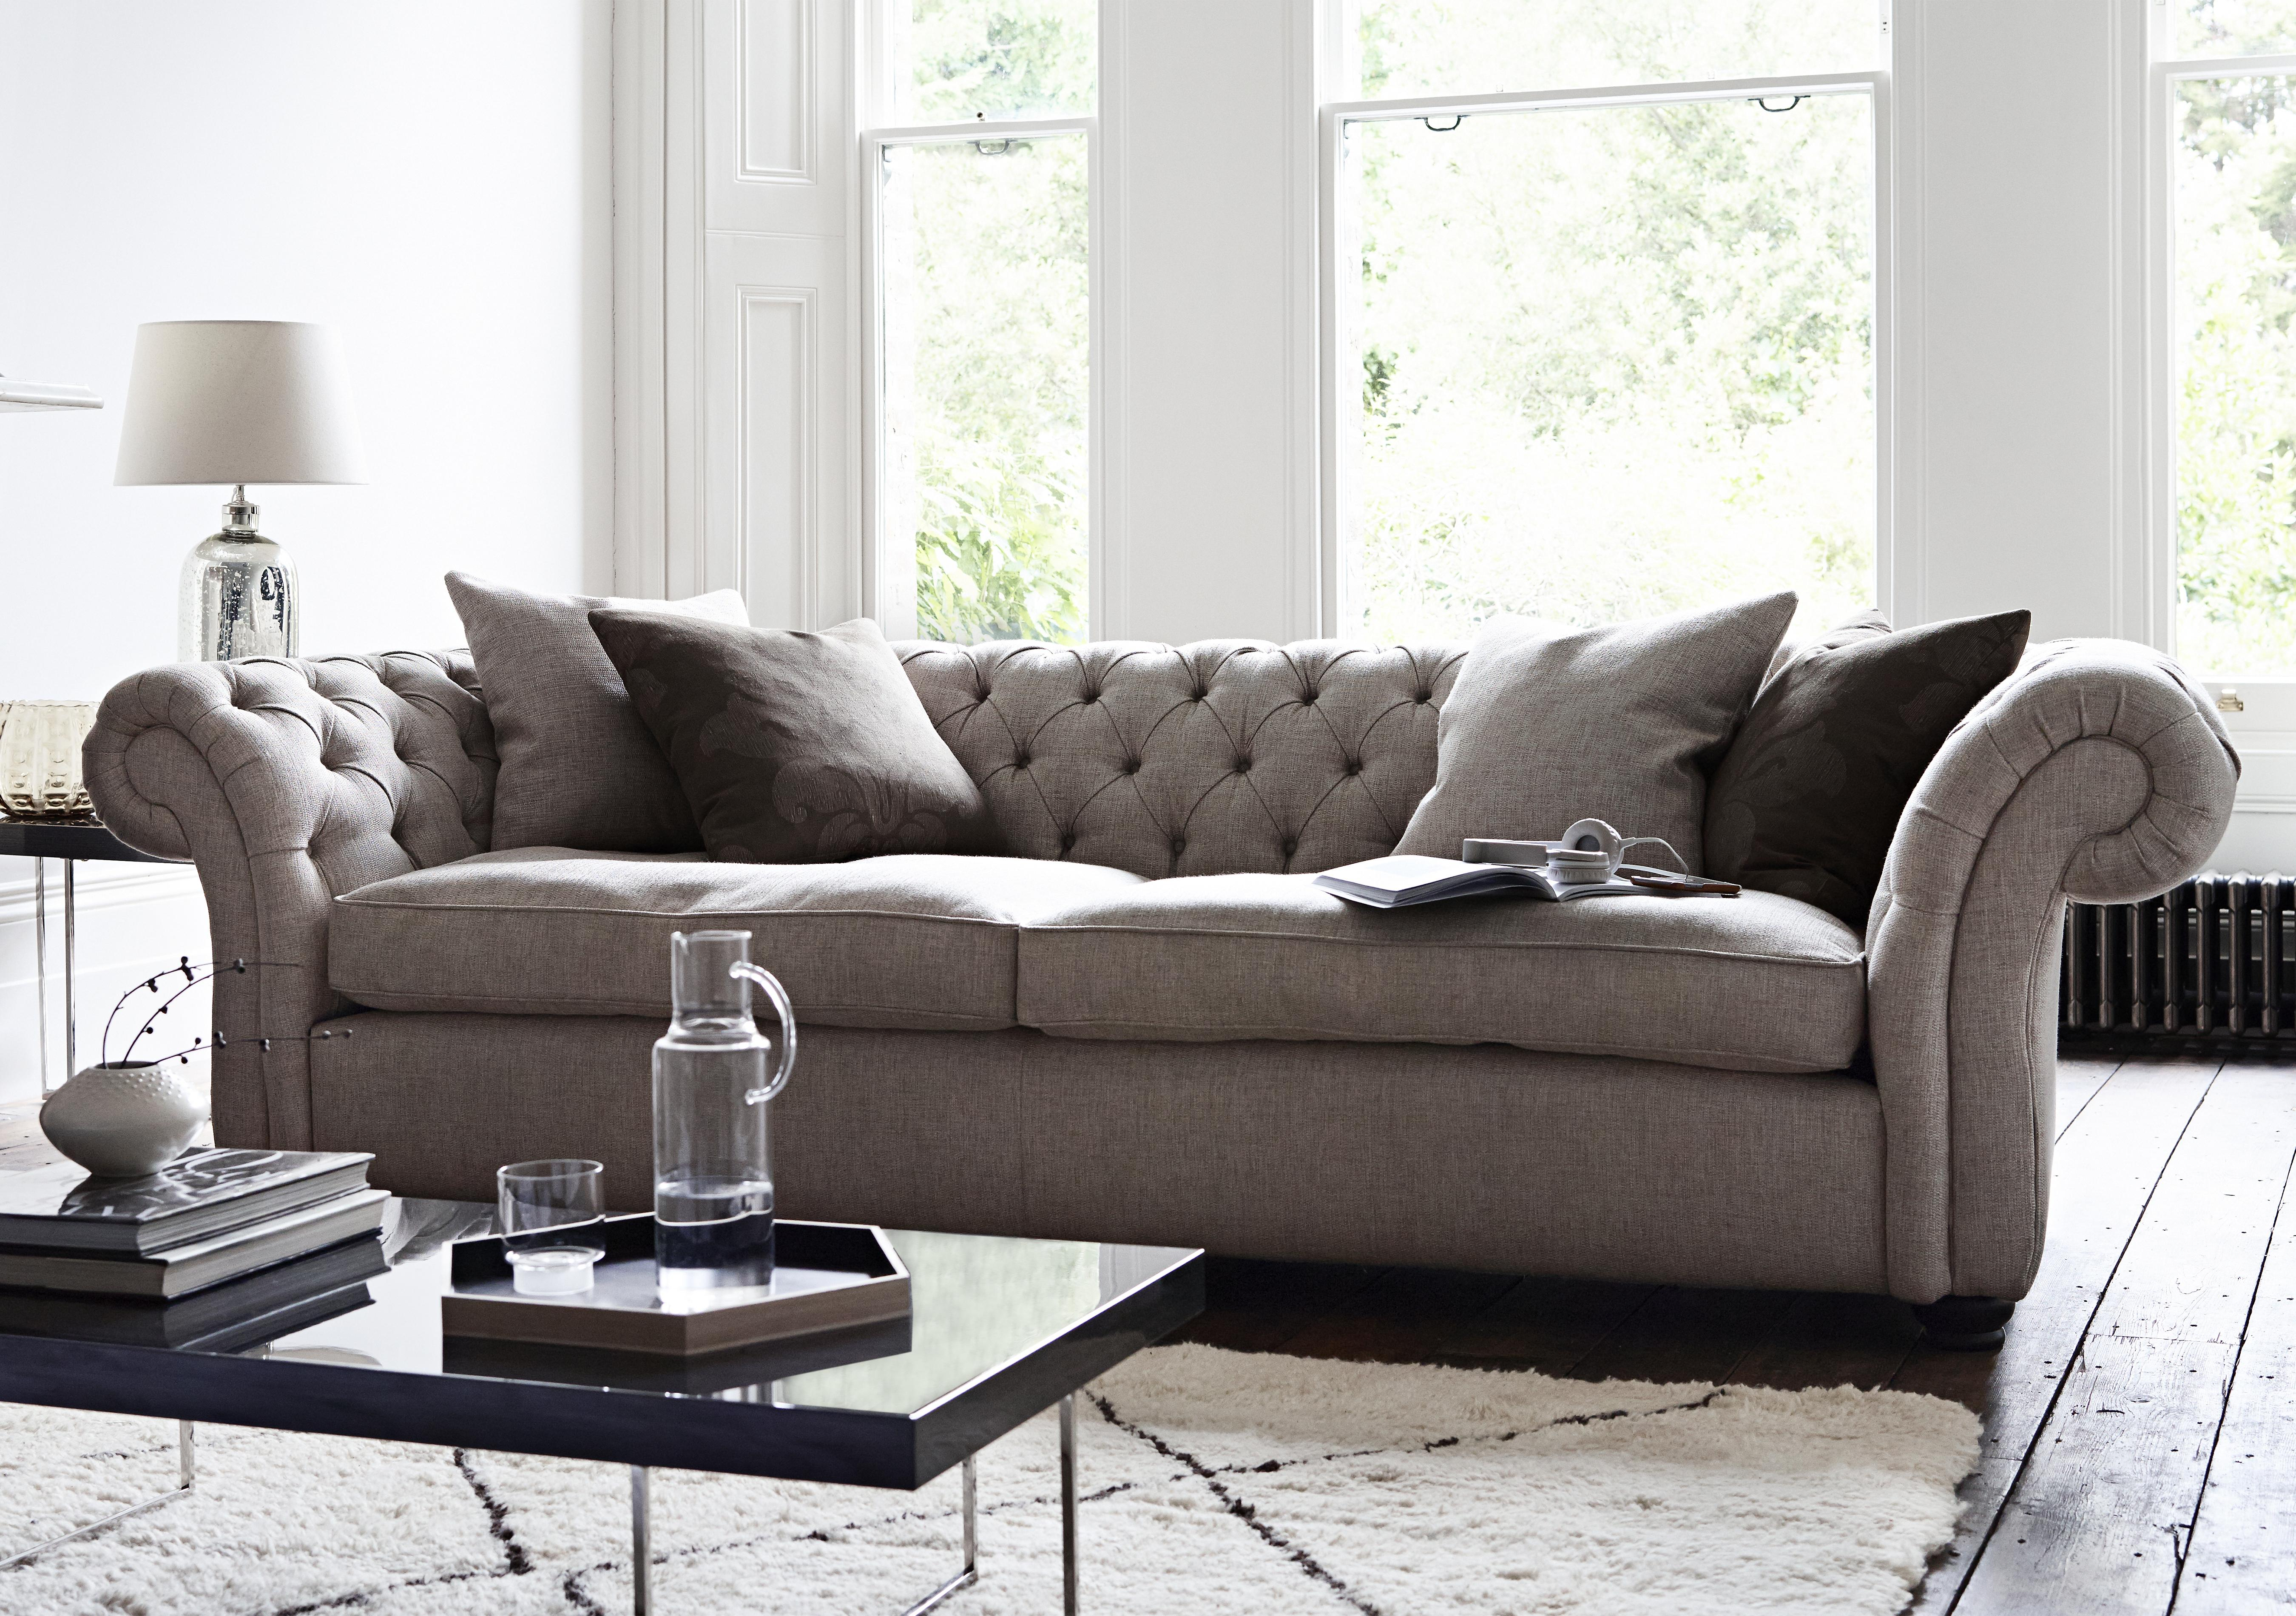 chesterfield sofa material create your own sectional online sofas armchairs furniture village